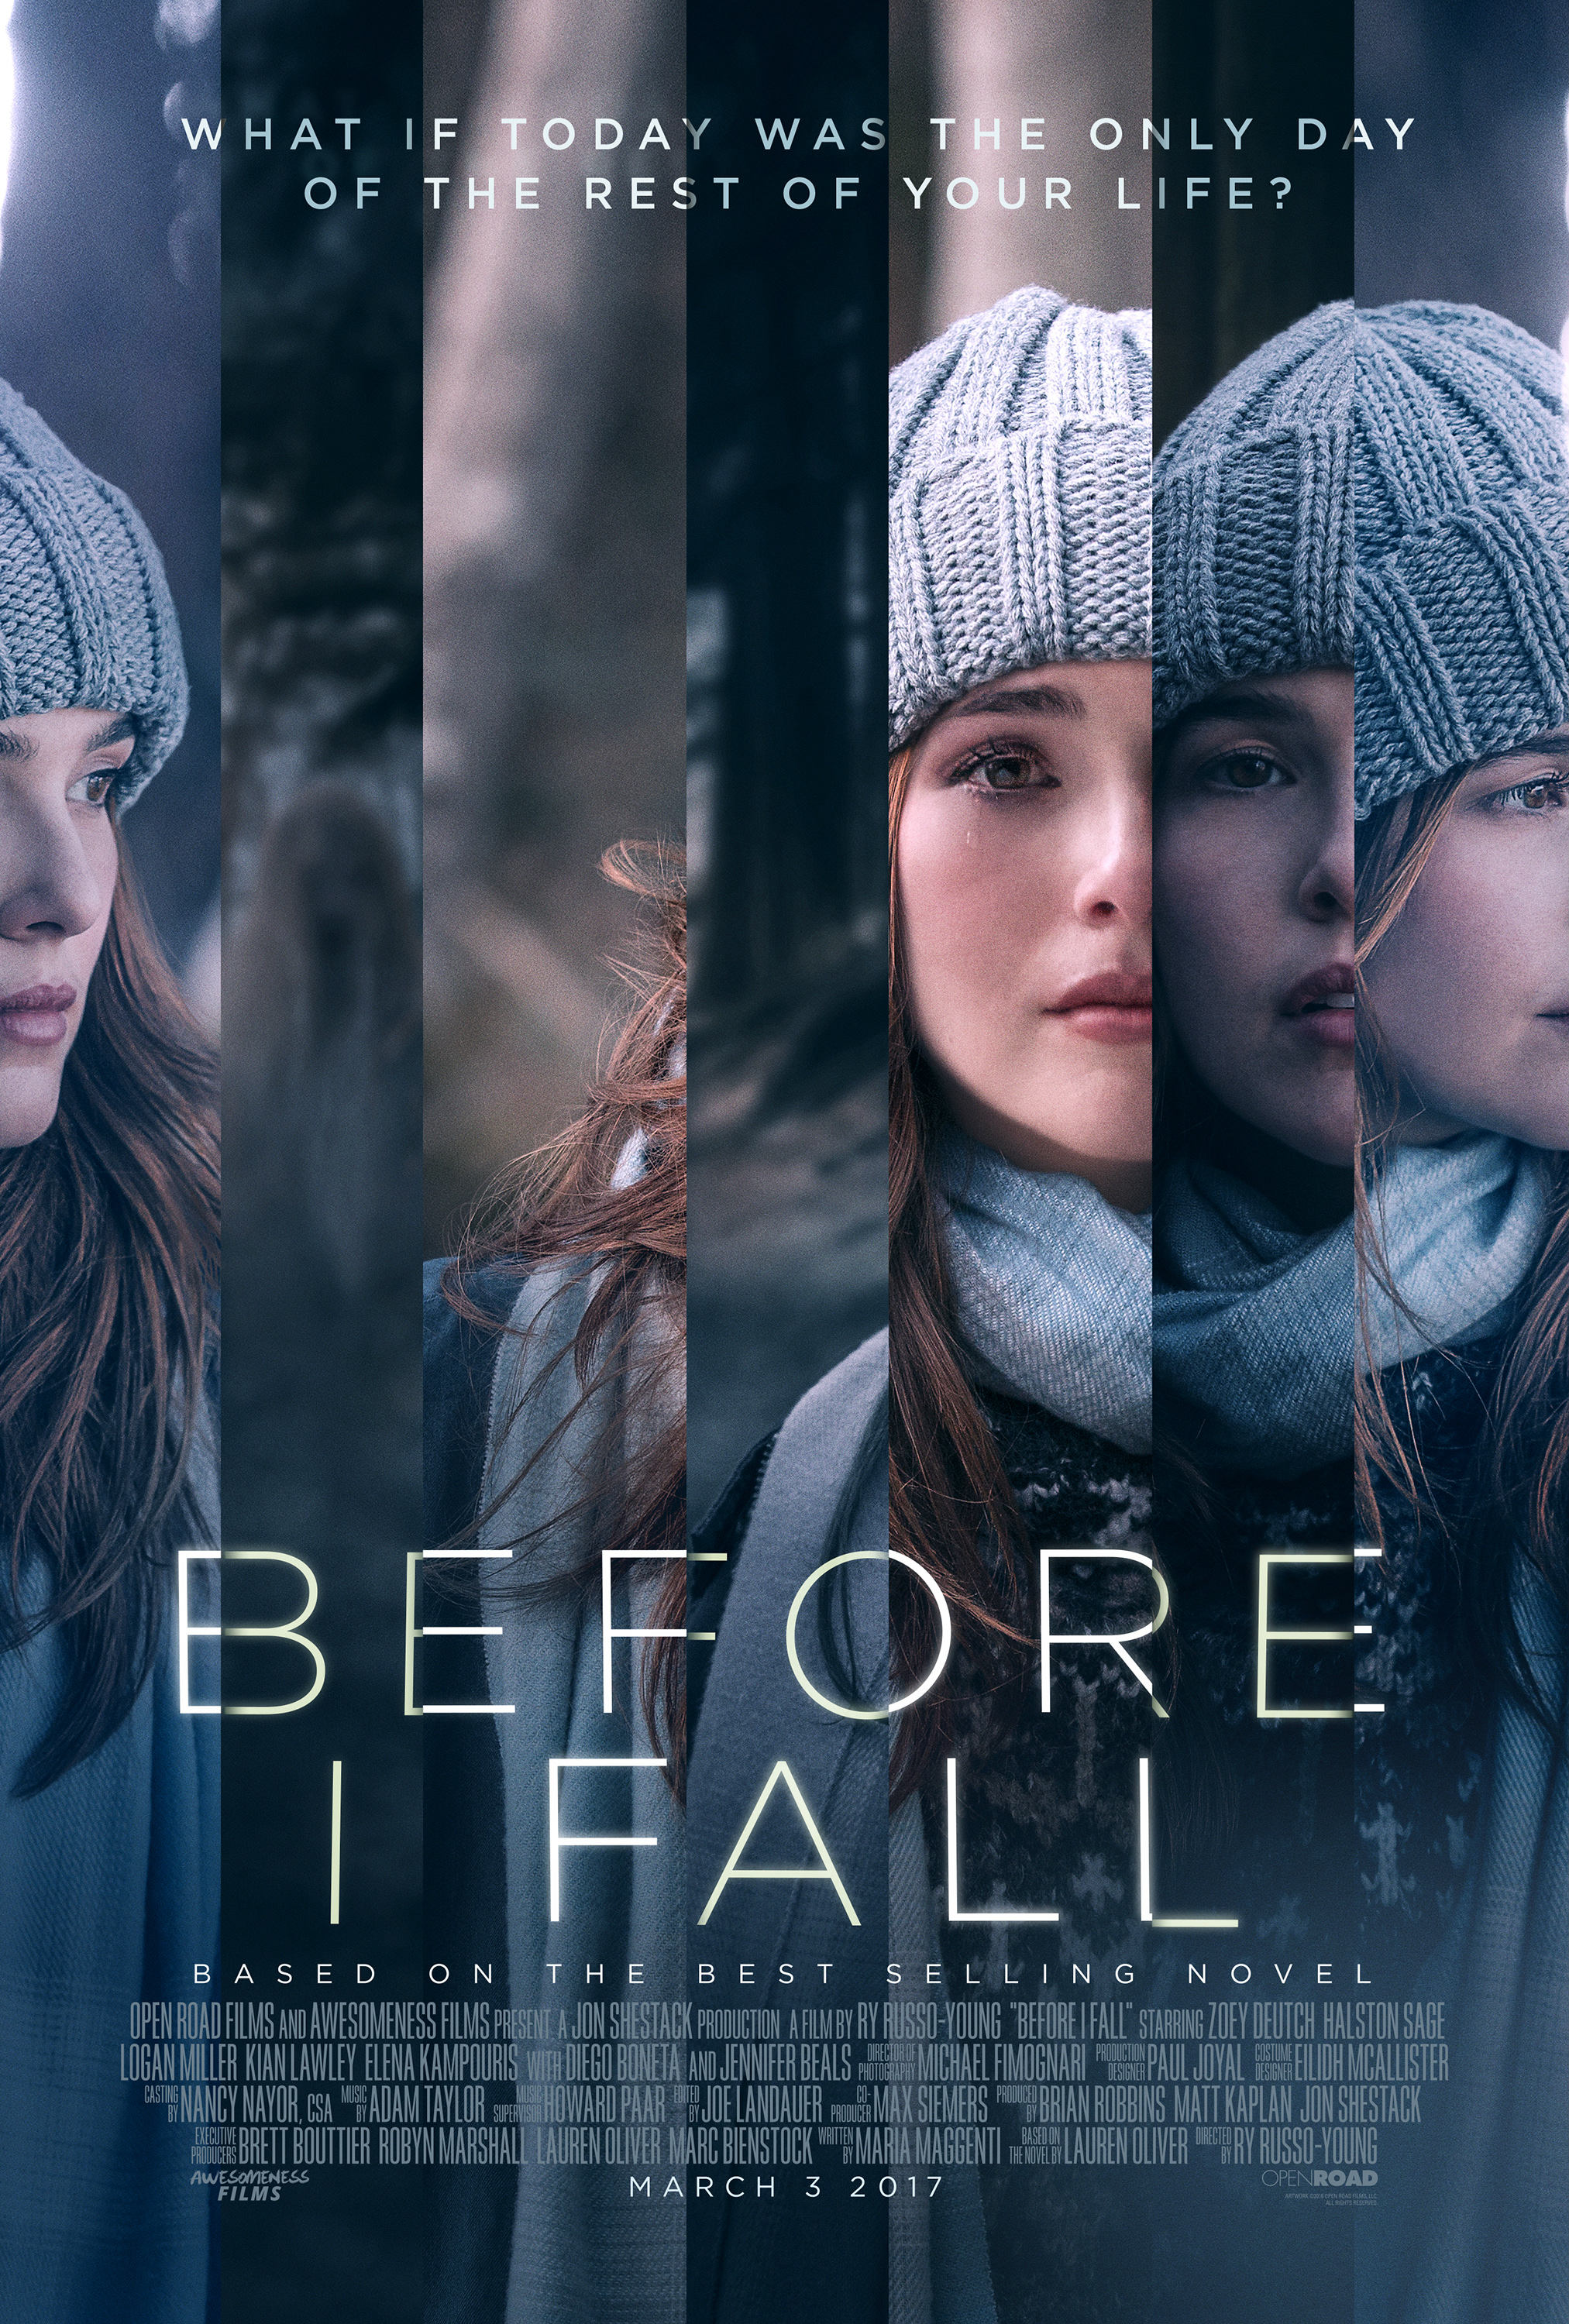 Zoey Deutch Experiences Groundhog Day In Sundance Trailer For Before I Fall